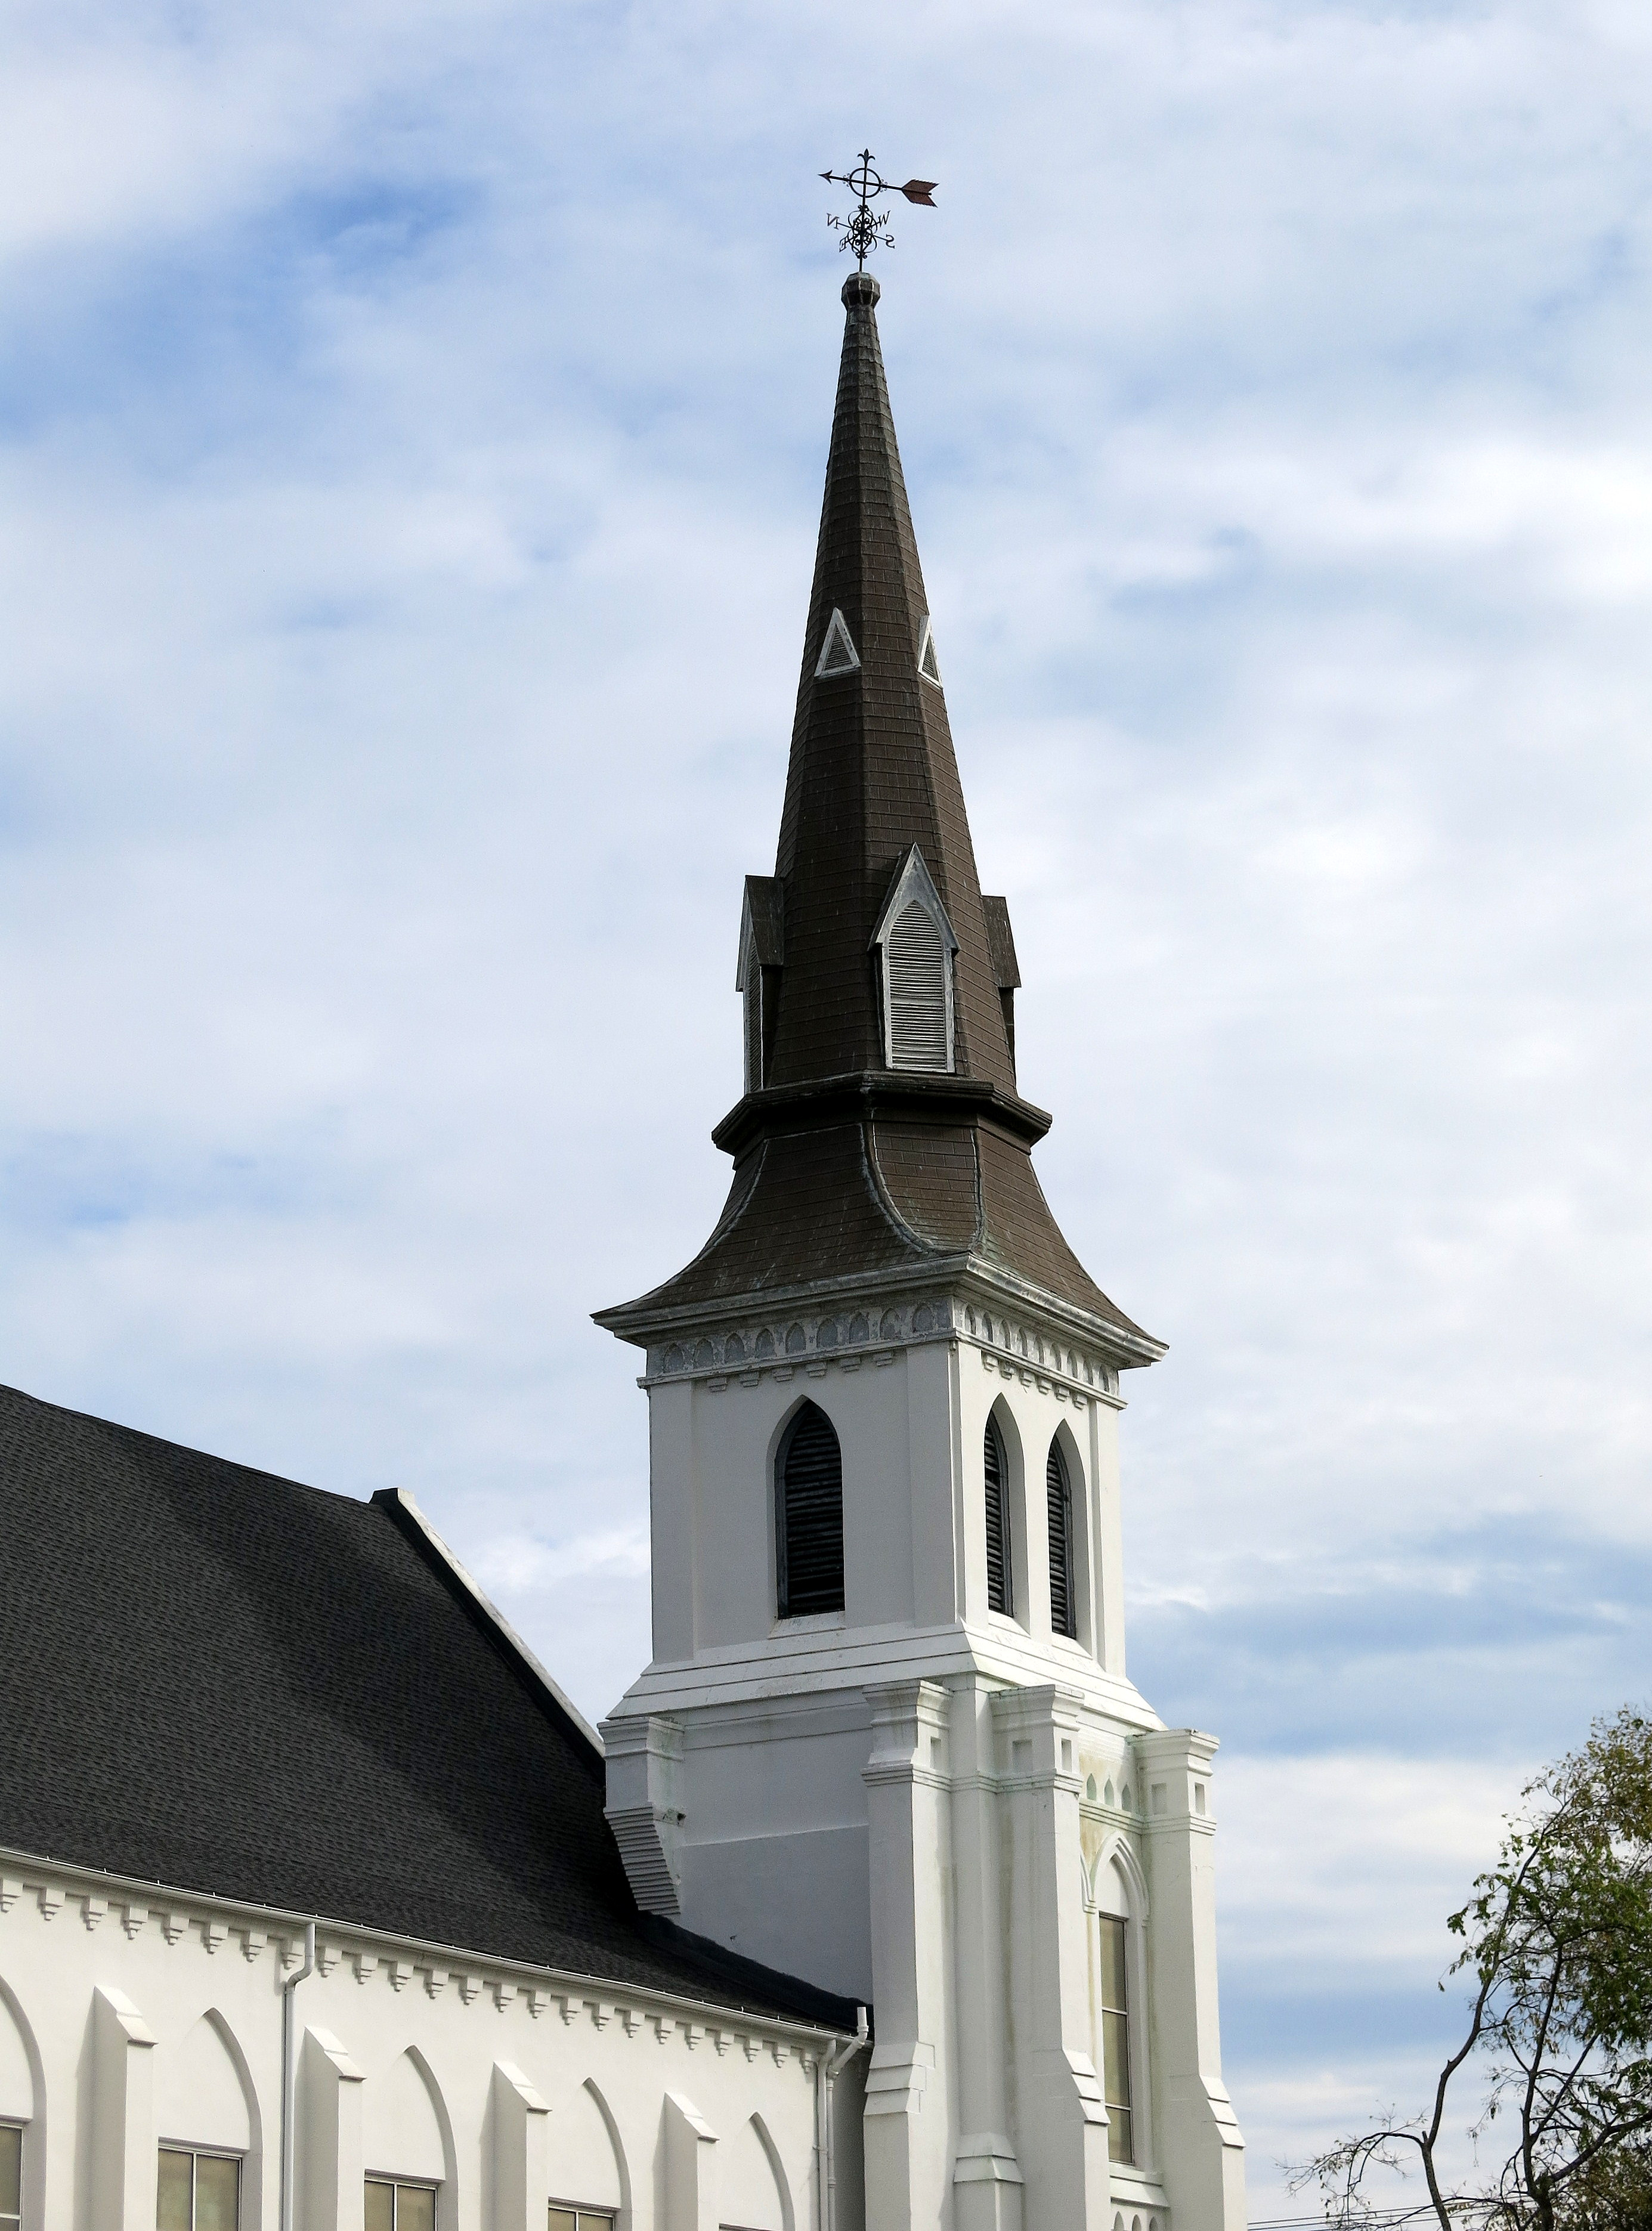 What types of government grants are available for churches?